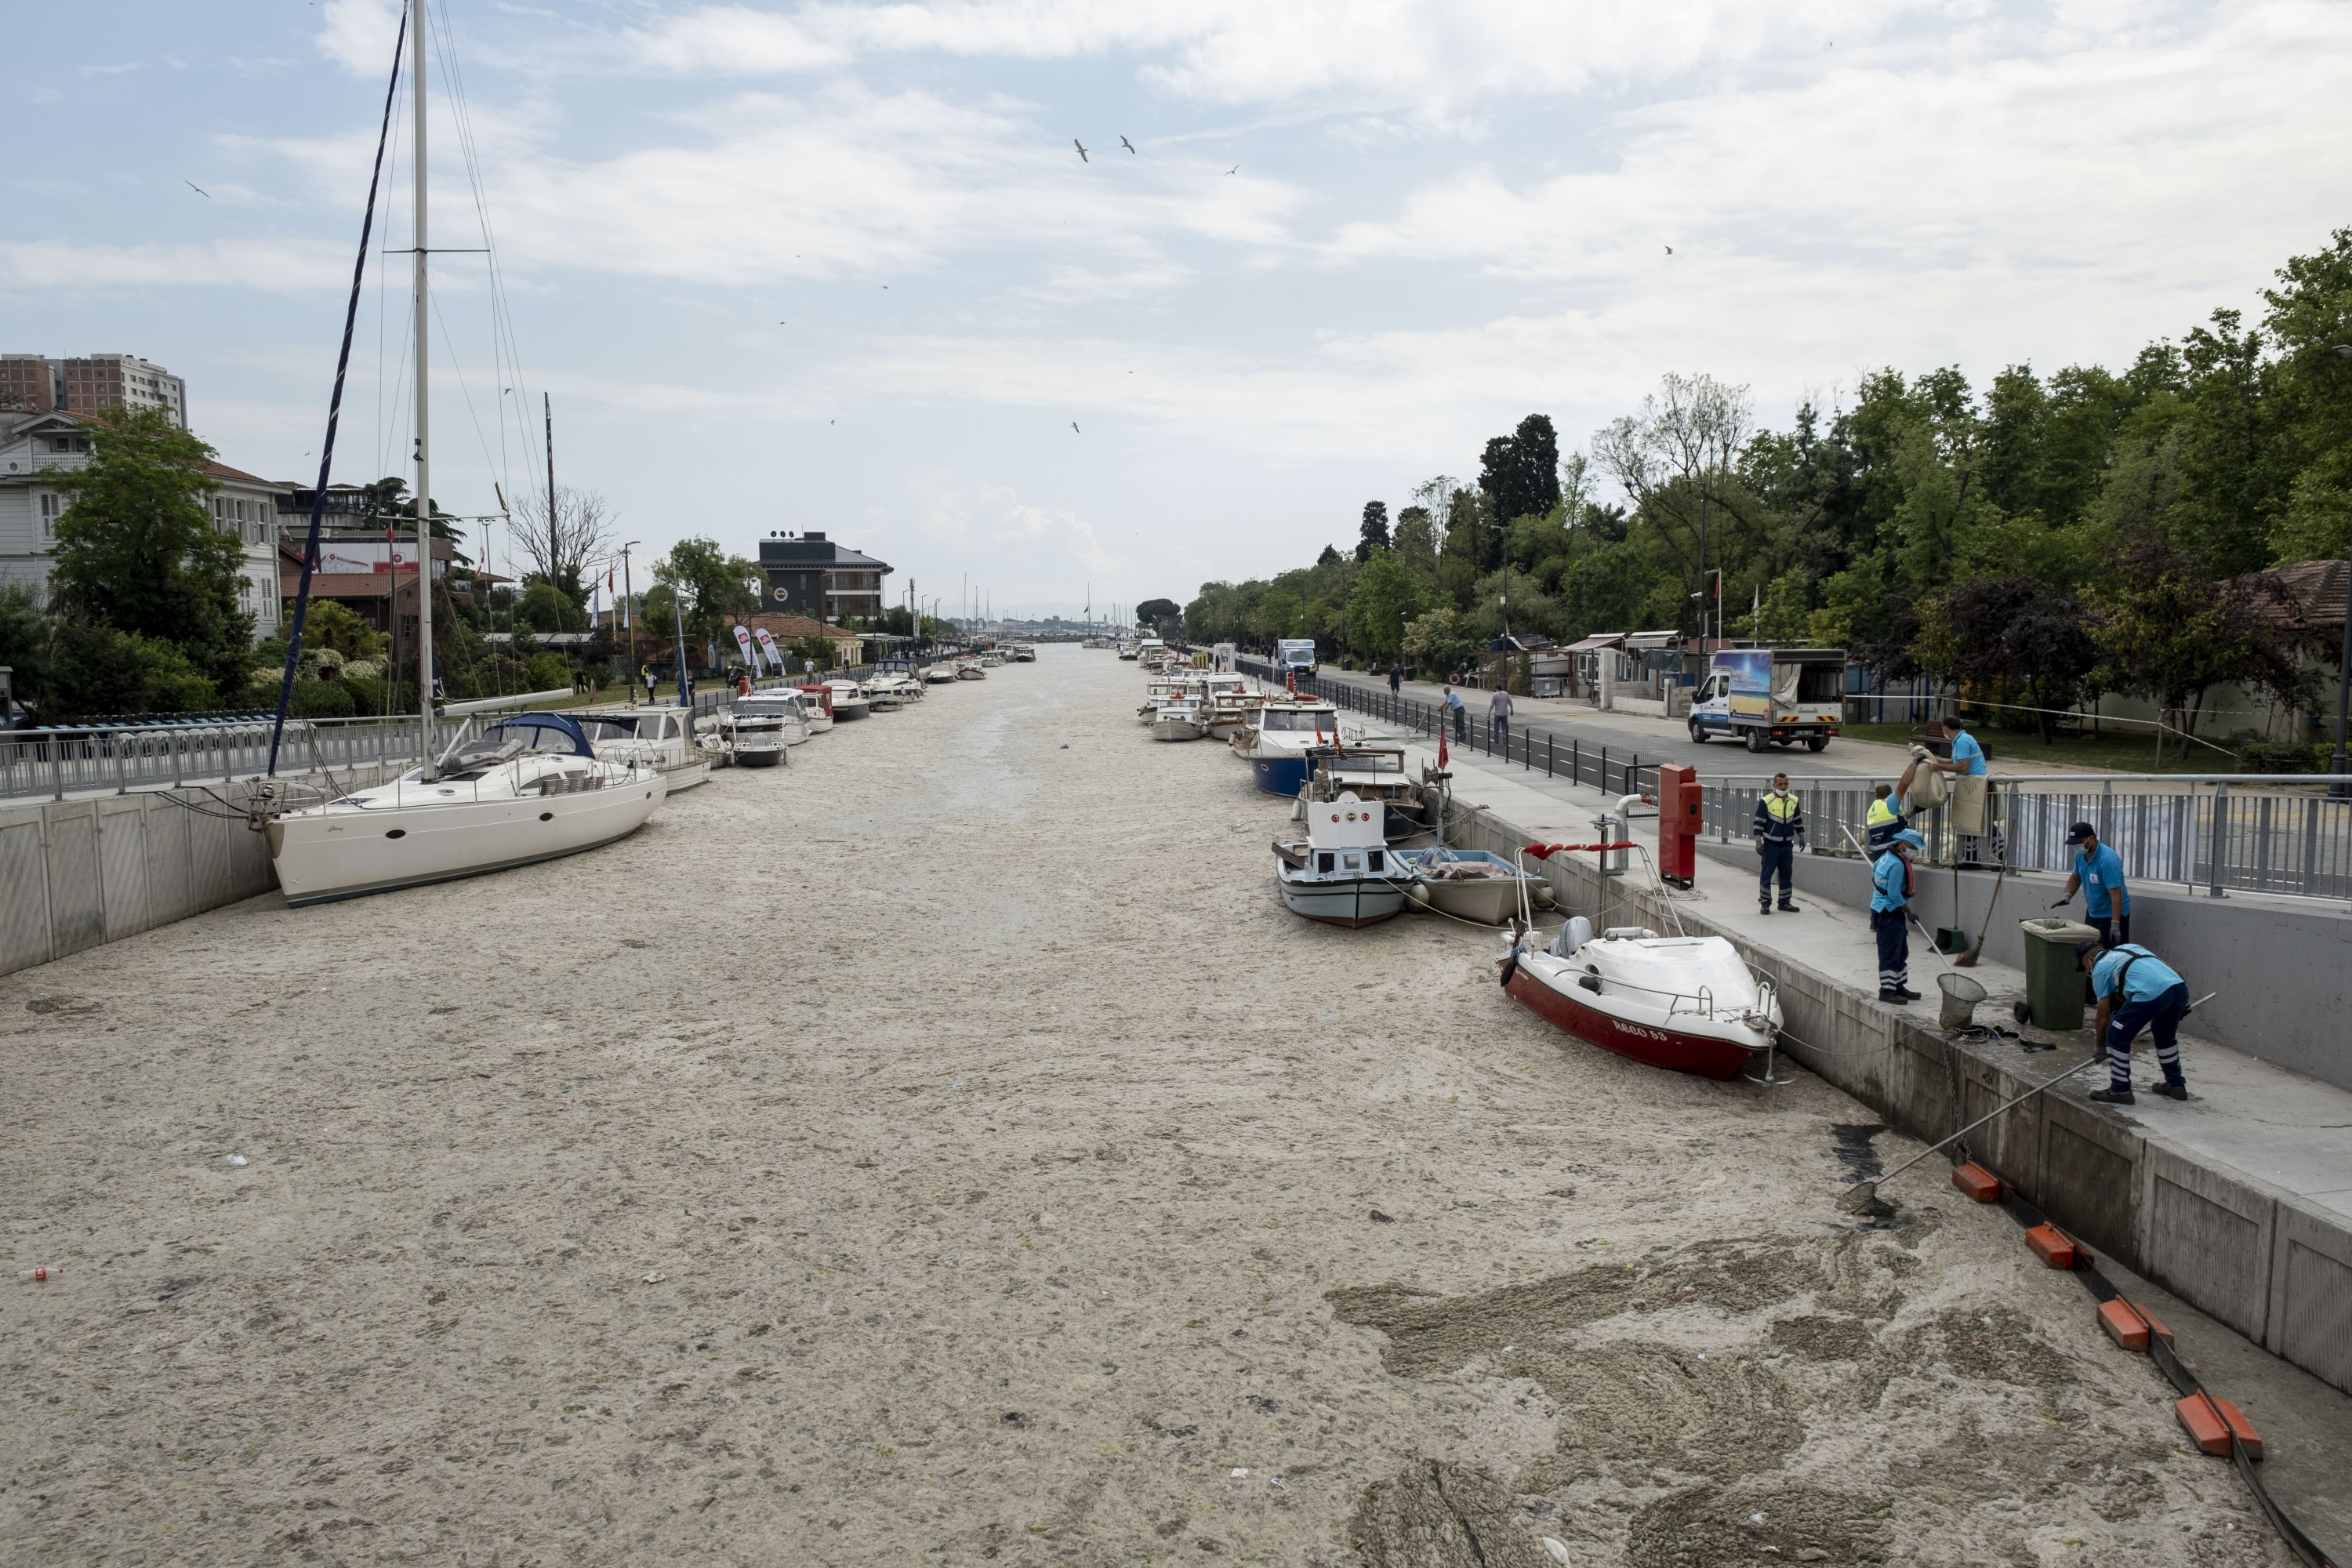 Mucilage covers the surface of the Marmara Sea, Kadıköy district, Istanbul, Turkey, June 7, 2021. (Photo by Getty Images)